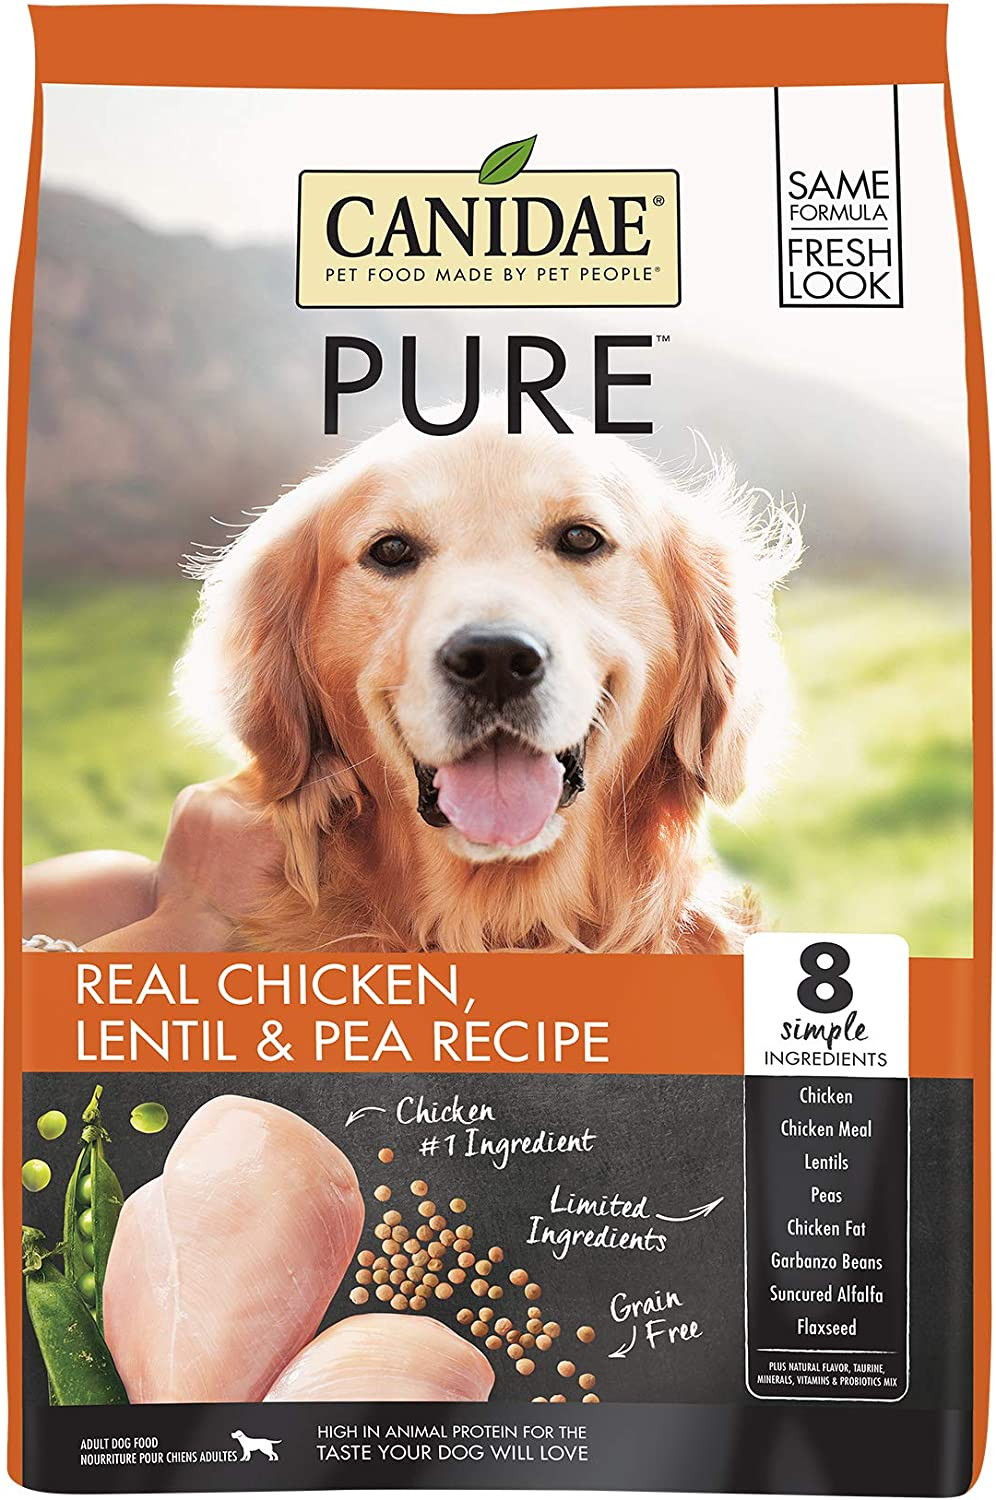 Canidae PURE Grain Free, Limited Ingredient Dry Dog Food, Chicken, Lentil and Pea, 24lbs